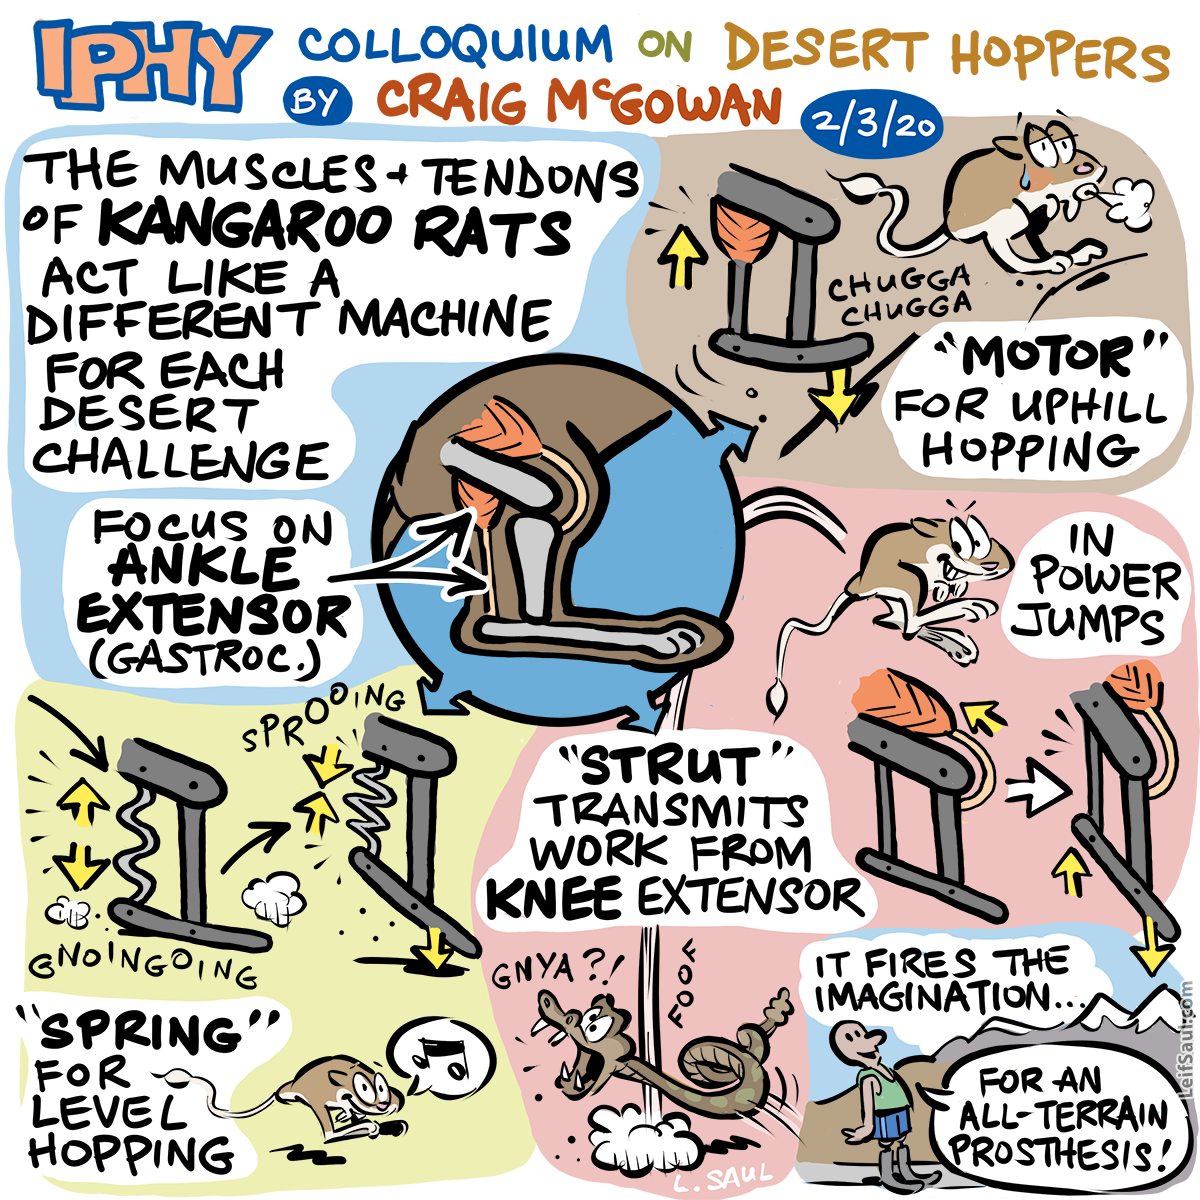 The kangaroo rat's adaptable hopping mechanism